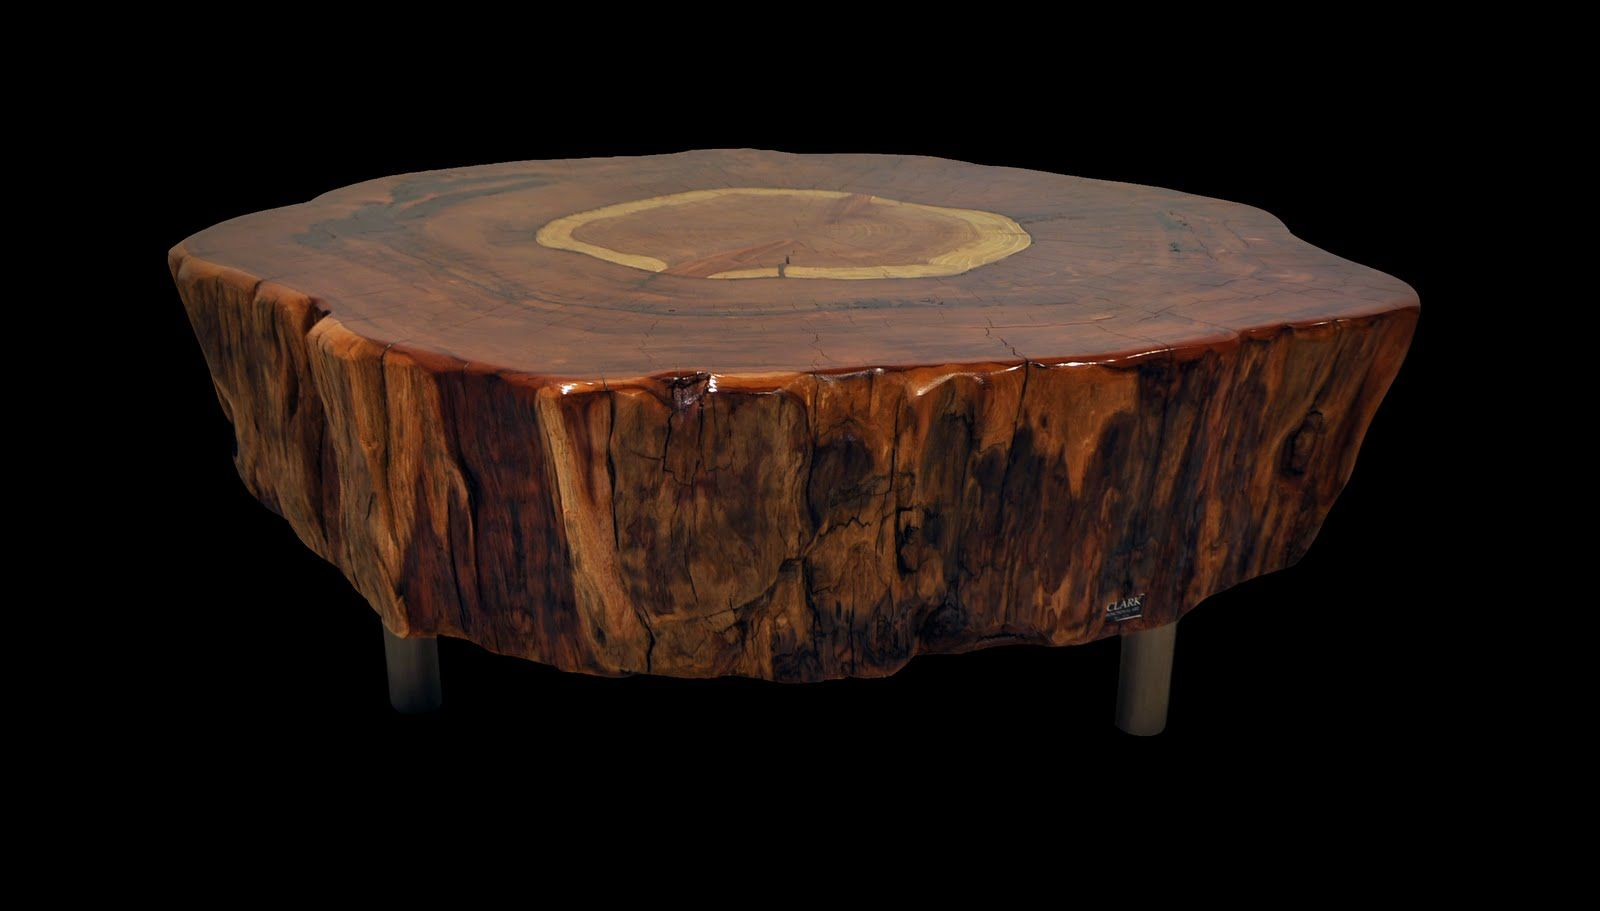 CLARK Functional Art: Very Large 4 1/2 Foot Diameter Redwood Tree Trunk  Table